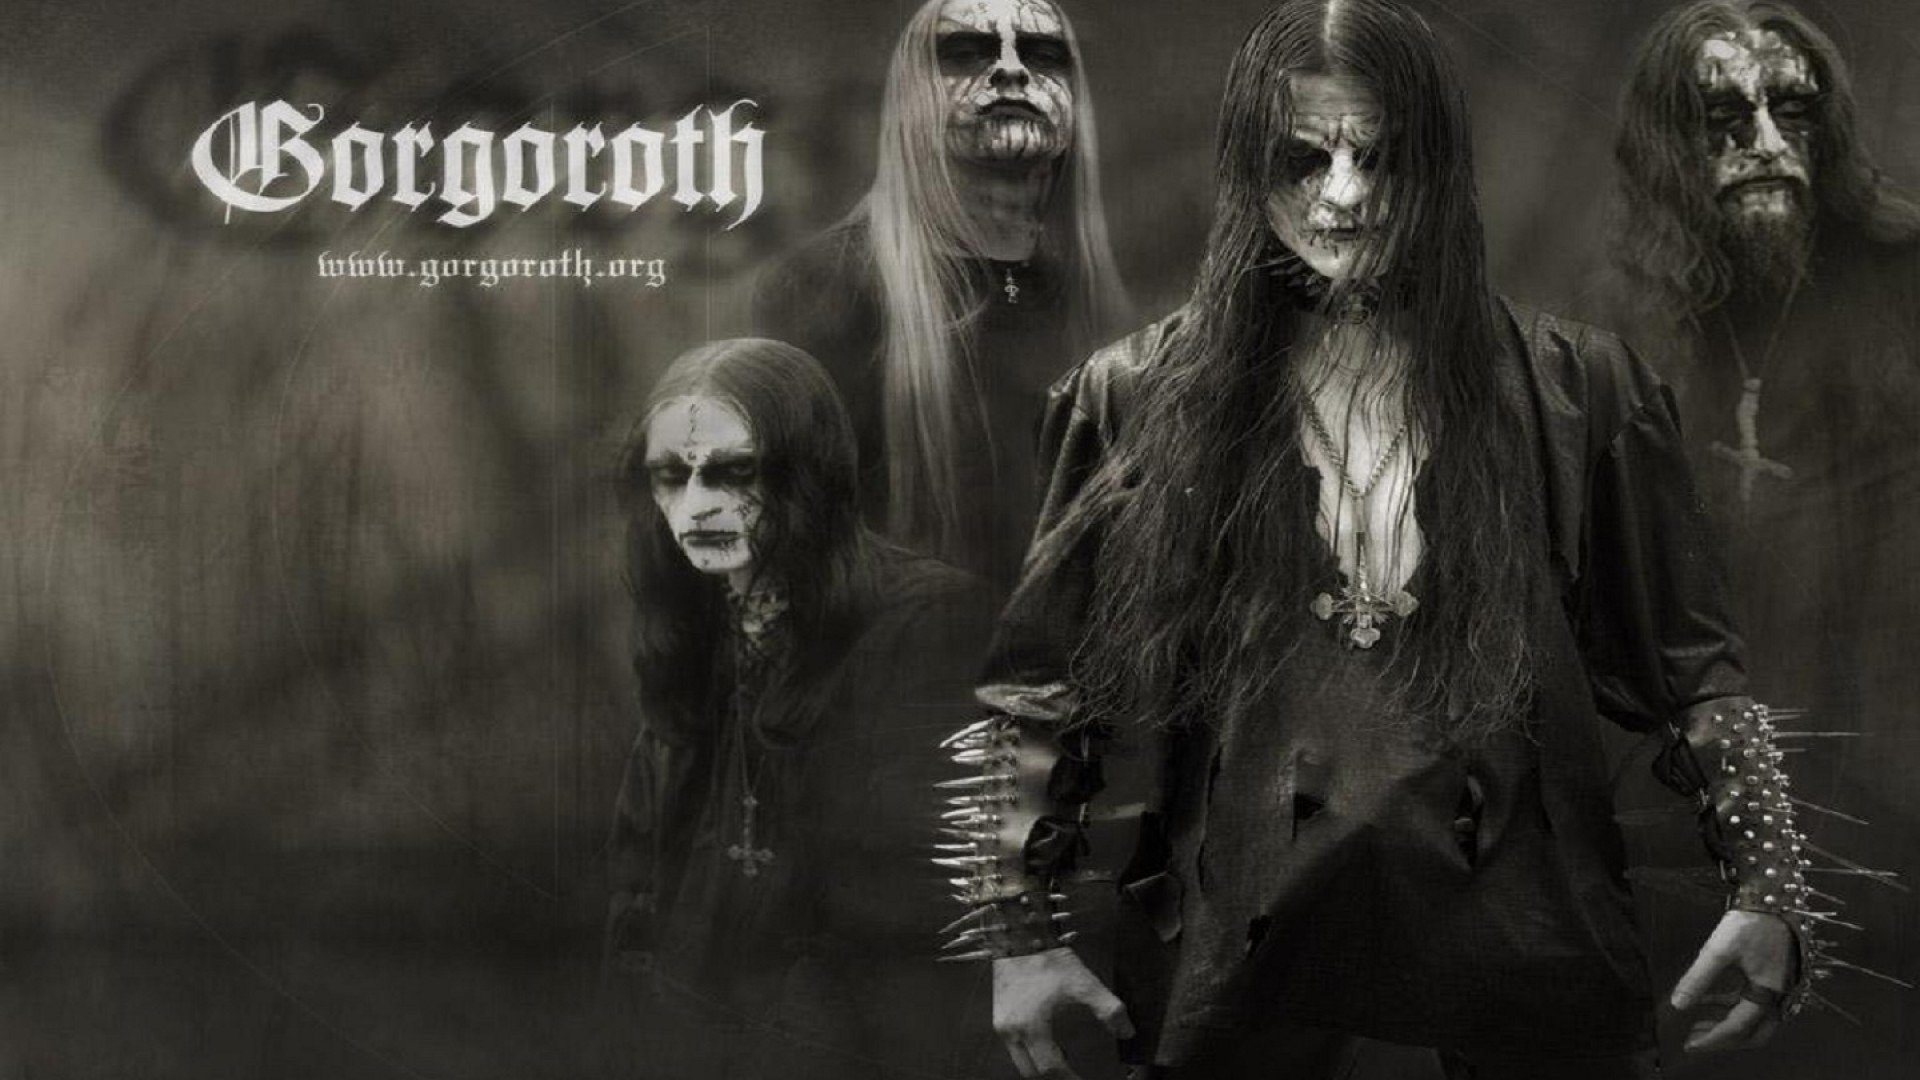 Hd Wallpapers Rock Bands Gorgoroth Full Hd Wallpaper And Background Image